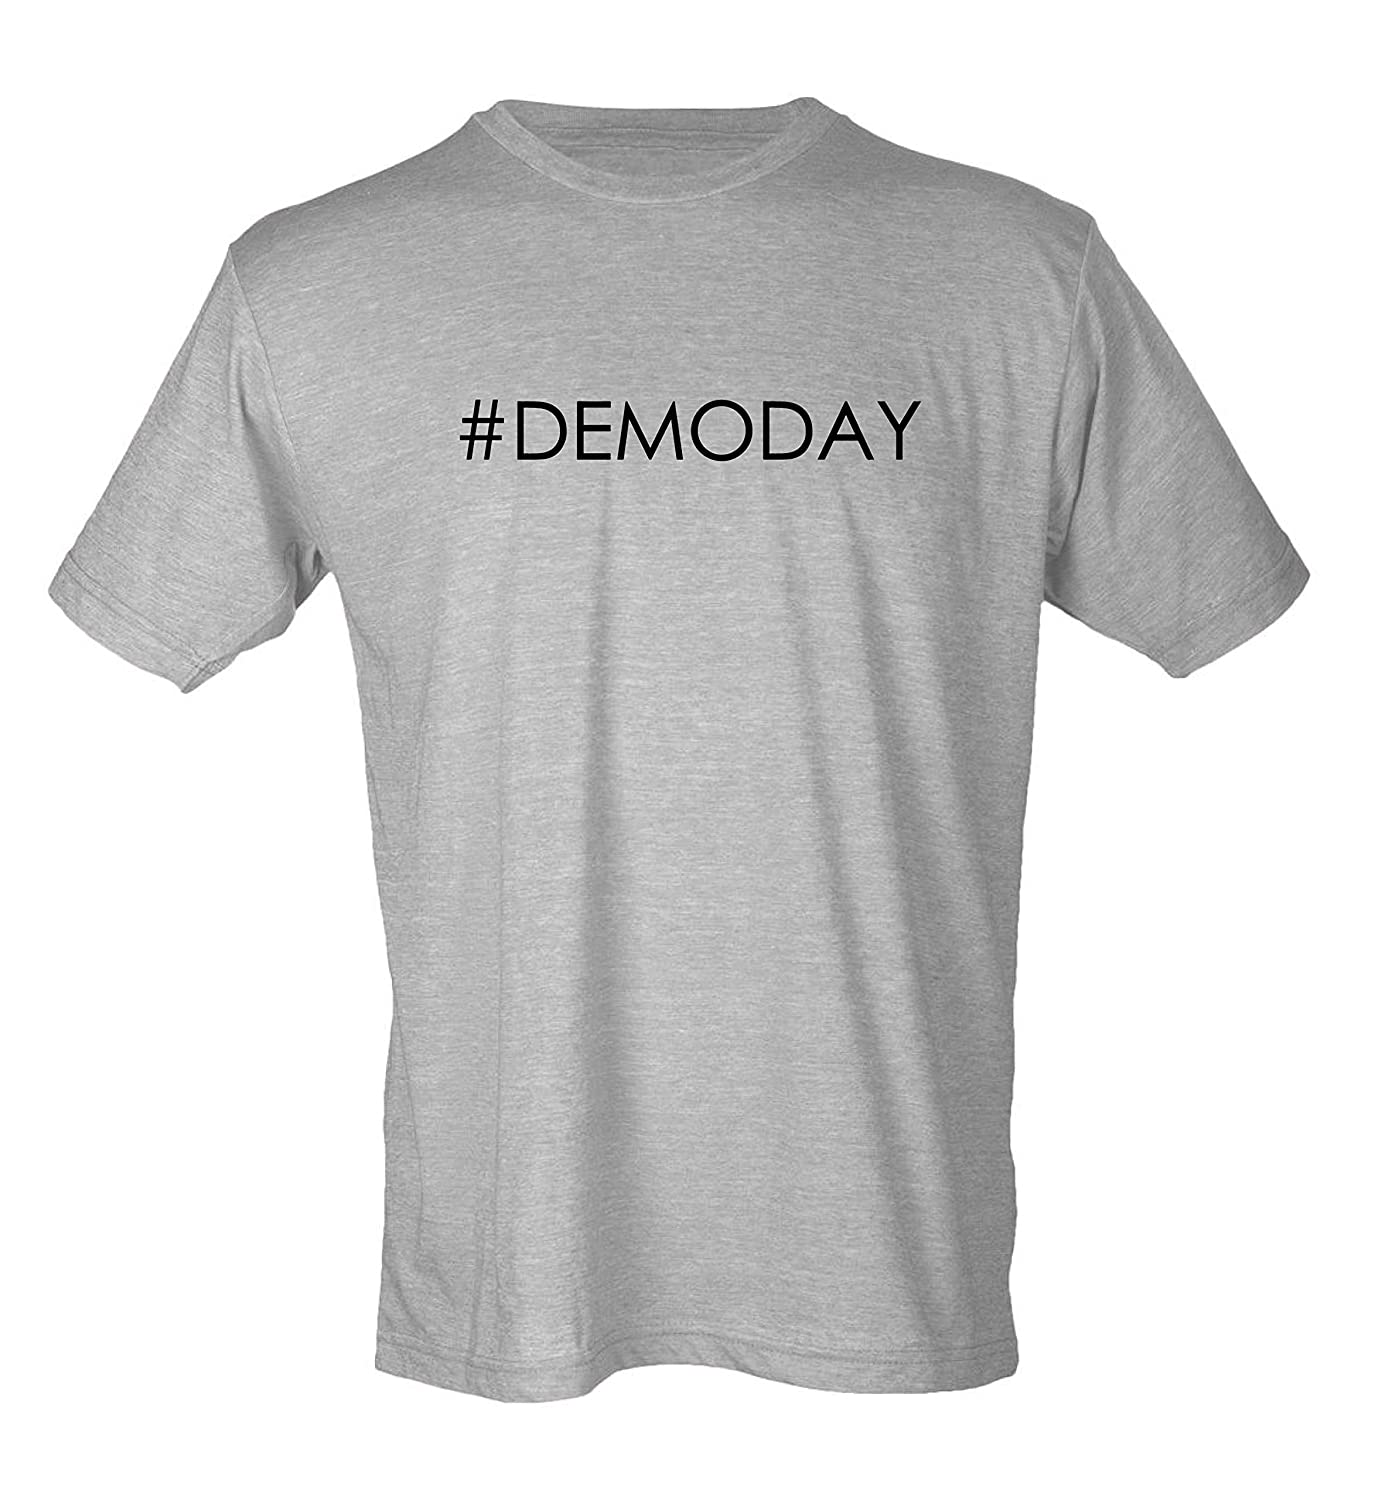 #DEMODAY t-shirt Demo Day shirt DEMODAY